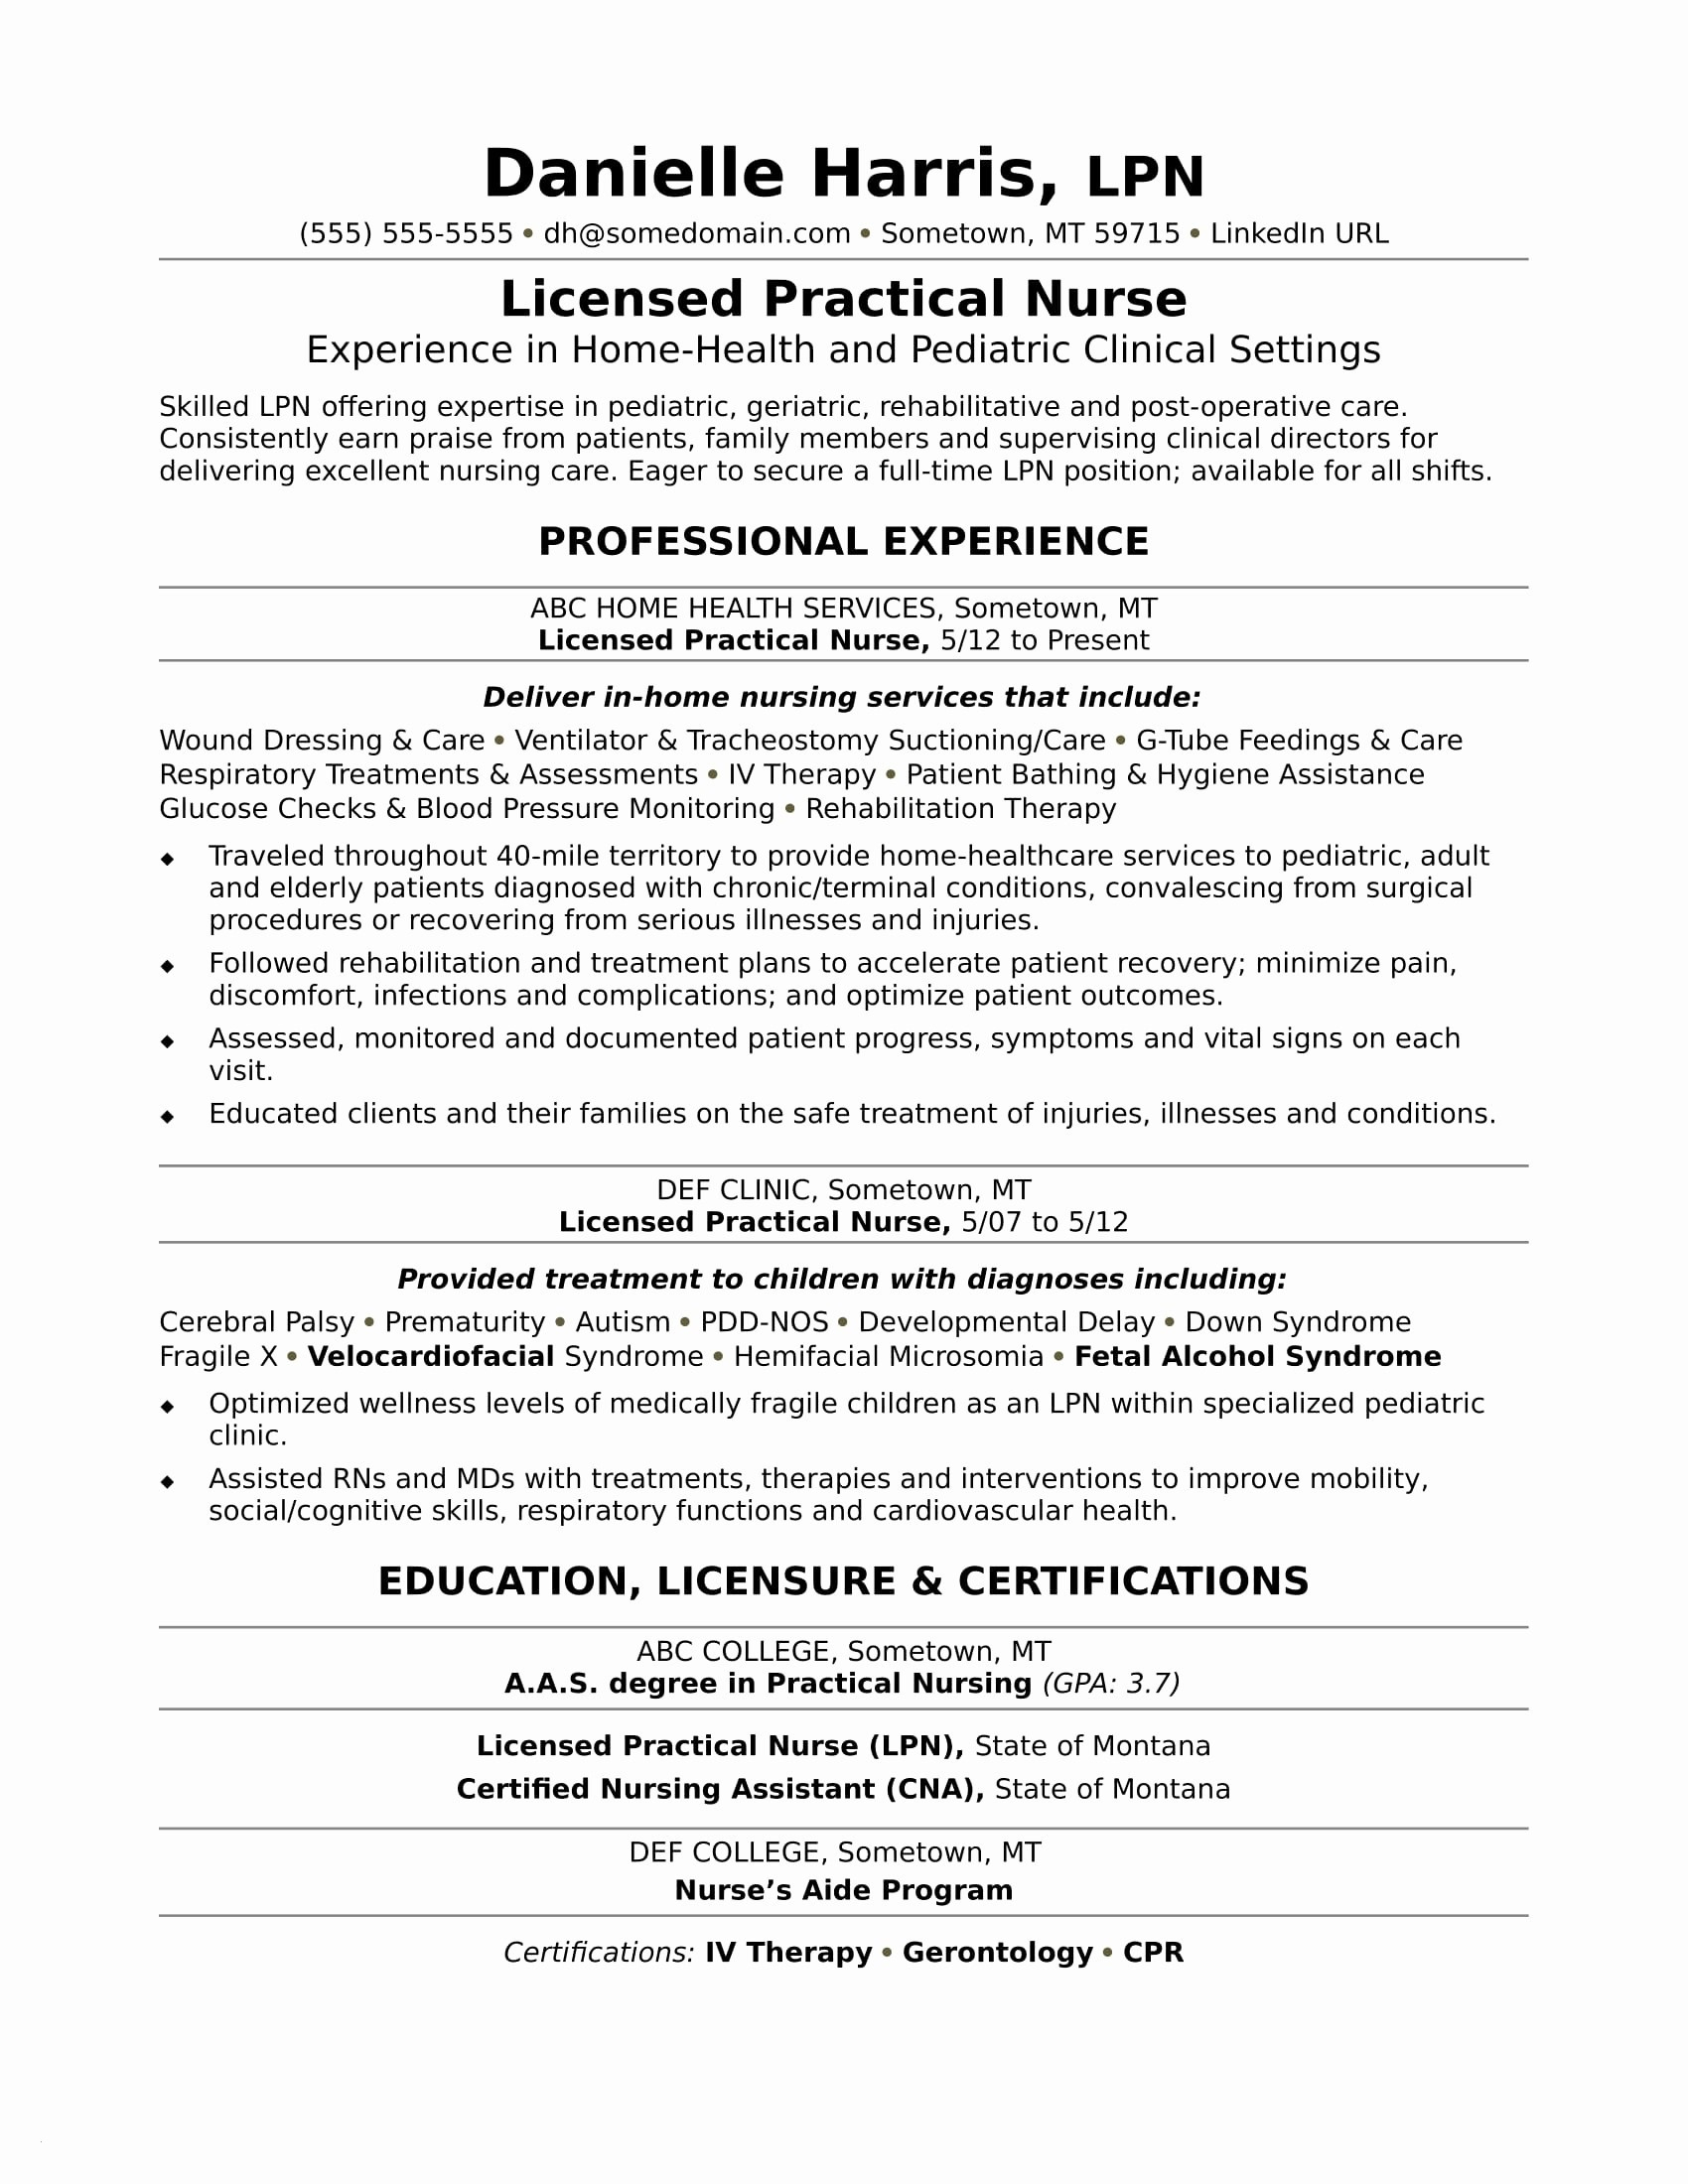 salesperson resume template example-Salesperson Resume Template Fresh New Nurse Resume Awesome Nurse Resume 0d Wallpapers 42 Beautiful Awesome 15-d